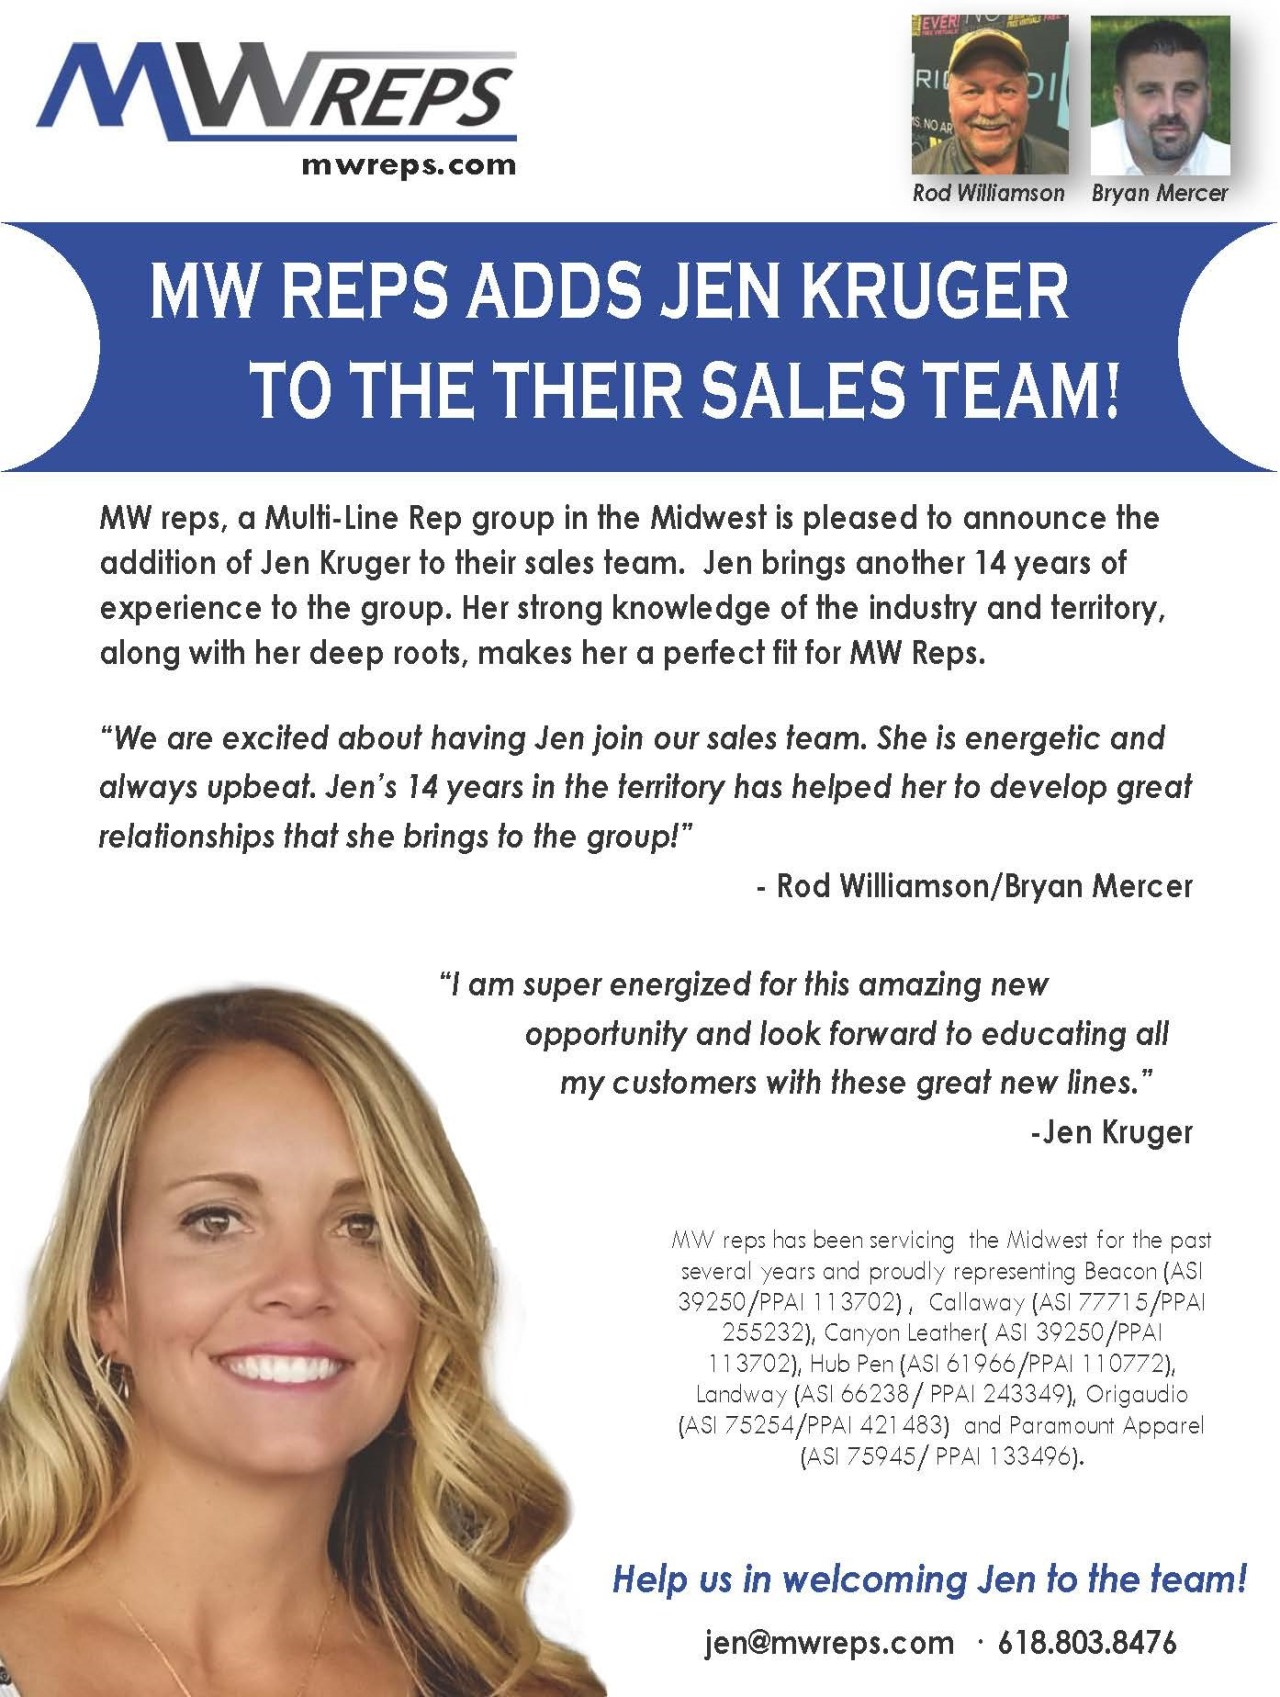 MW Reps Adds Jen Kruger to Their Sales Team